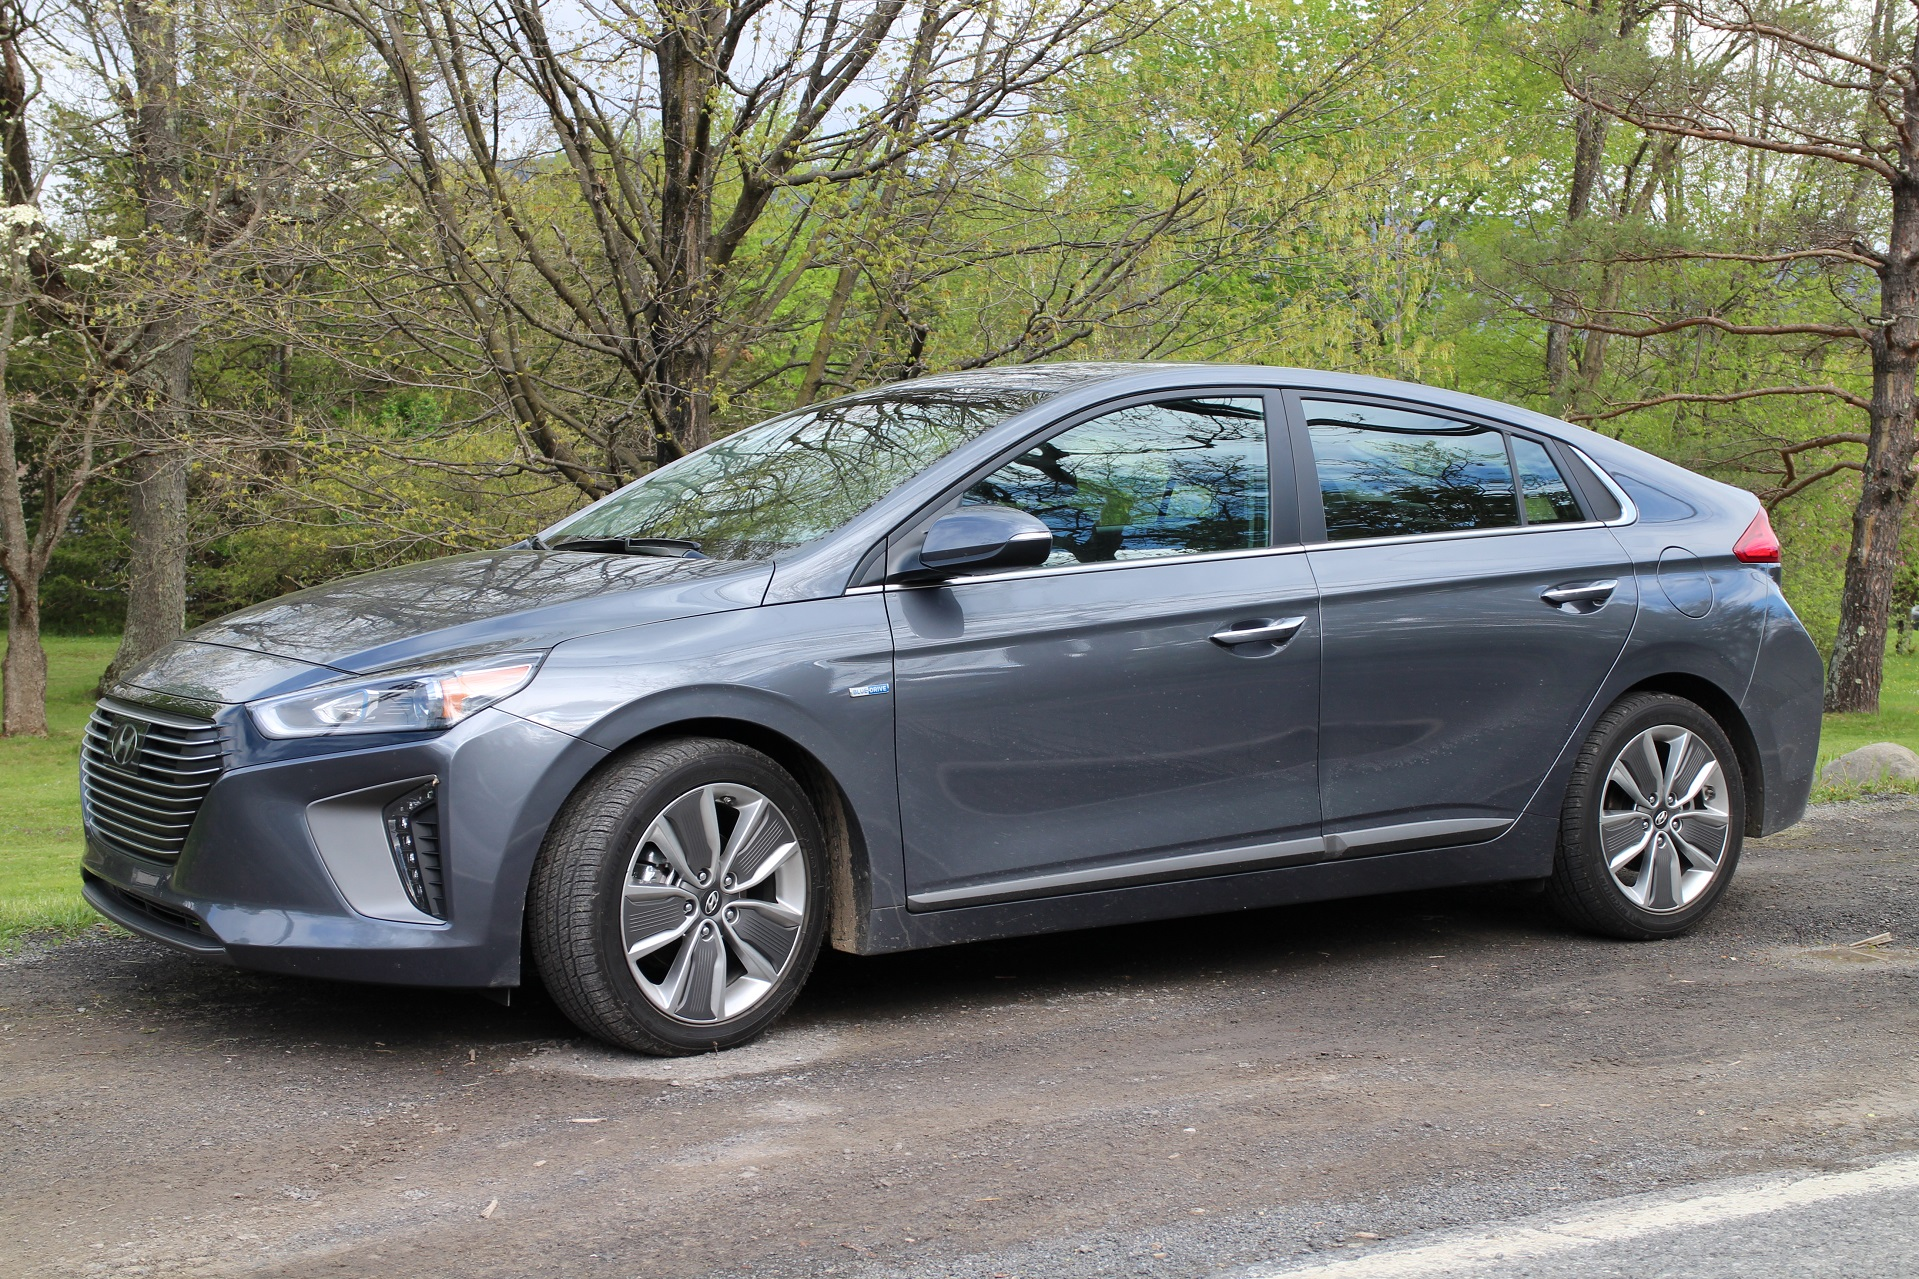 2017 Hyundai Ioniq Hybrid Gas Mileage Review